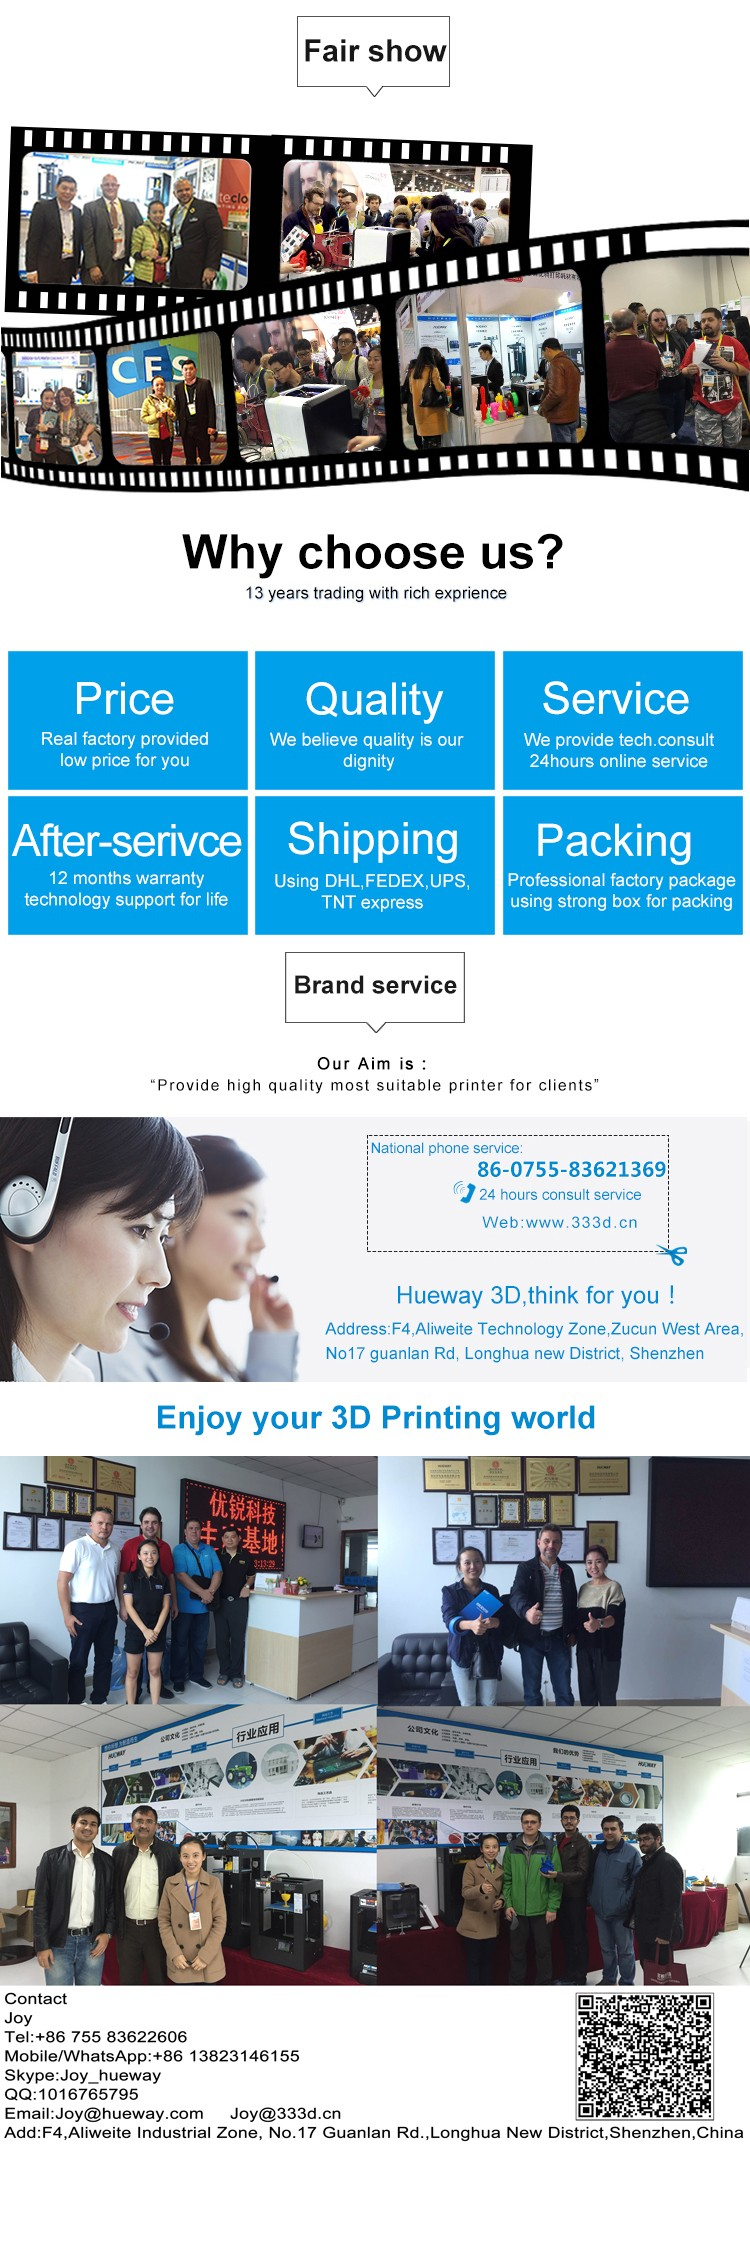 Free Shipping! 2017 Printer 3D Made in China Factory Wholesaling One year Warranty Professional FDM 3D Printer